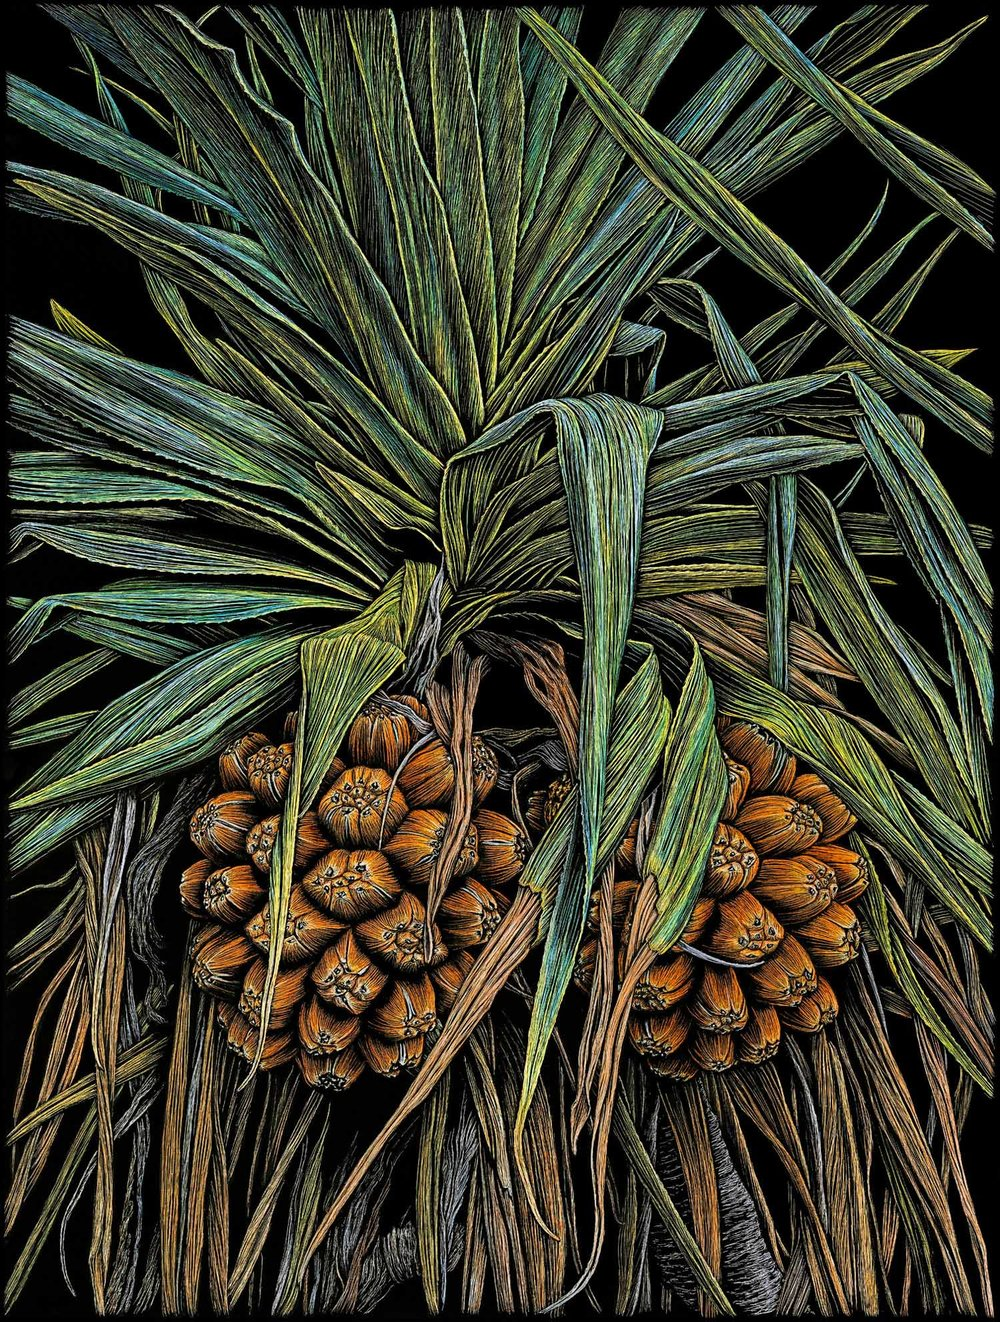 Pandanus Palm Beach (colour version)  76 x 57 cm Edition of 50  PIGMENT ON COTTON RAG PAPER  $1,350